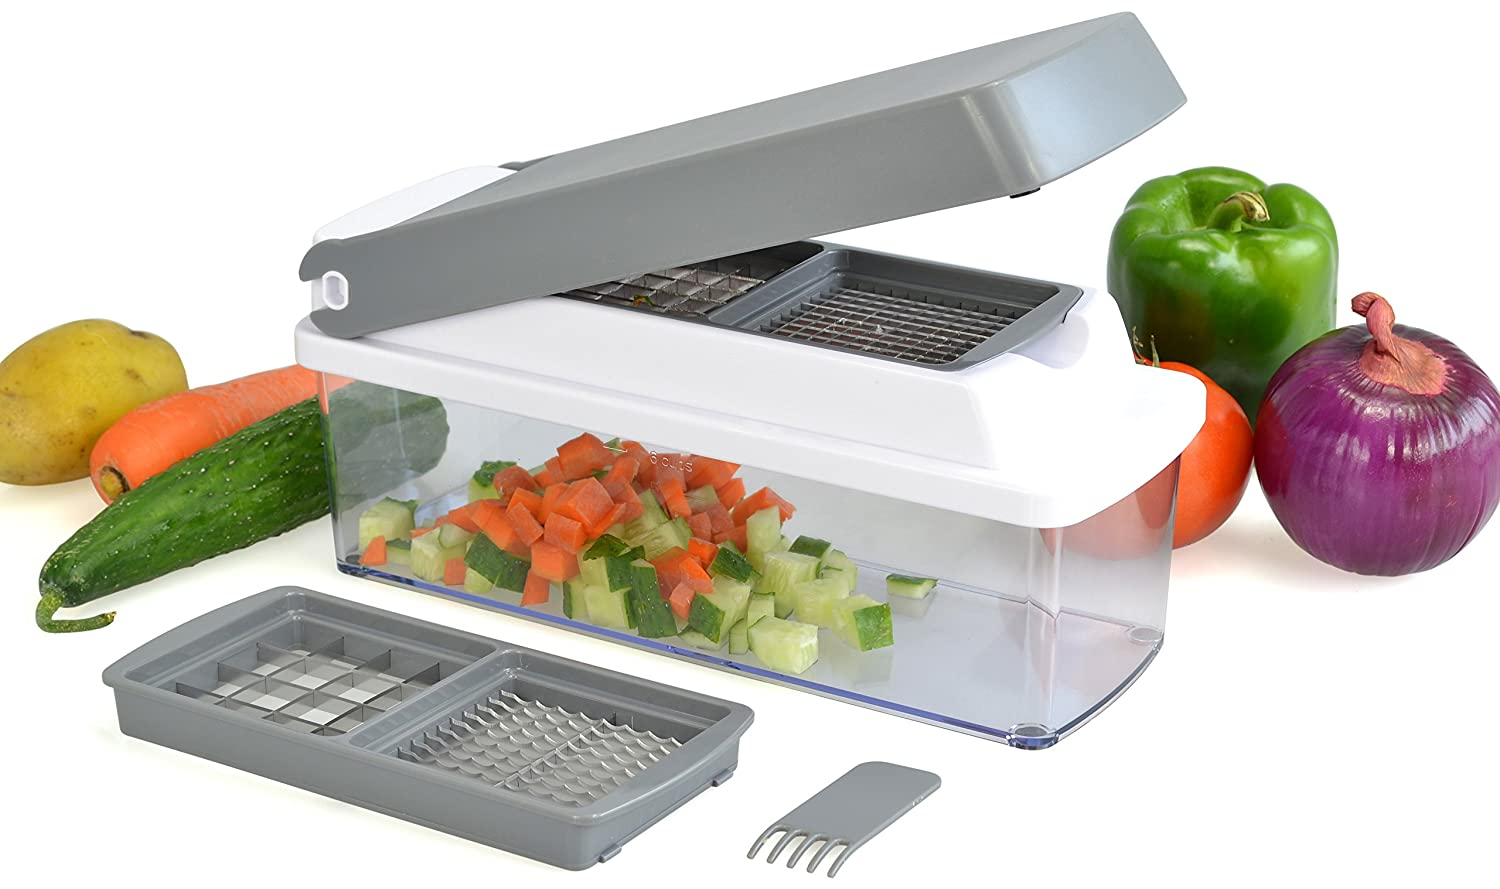 Surpahs Multi Vegetable Chopper, Cutter, Slicer, Dicer